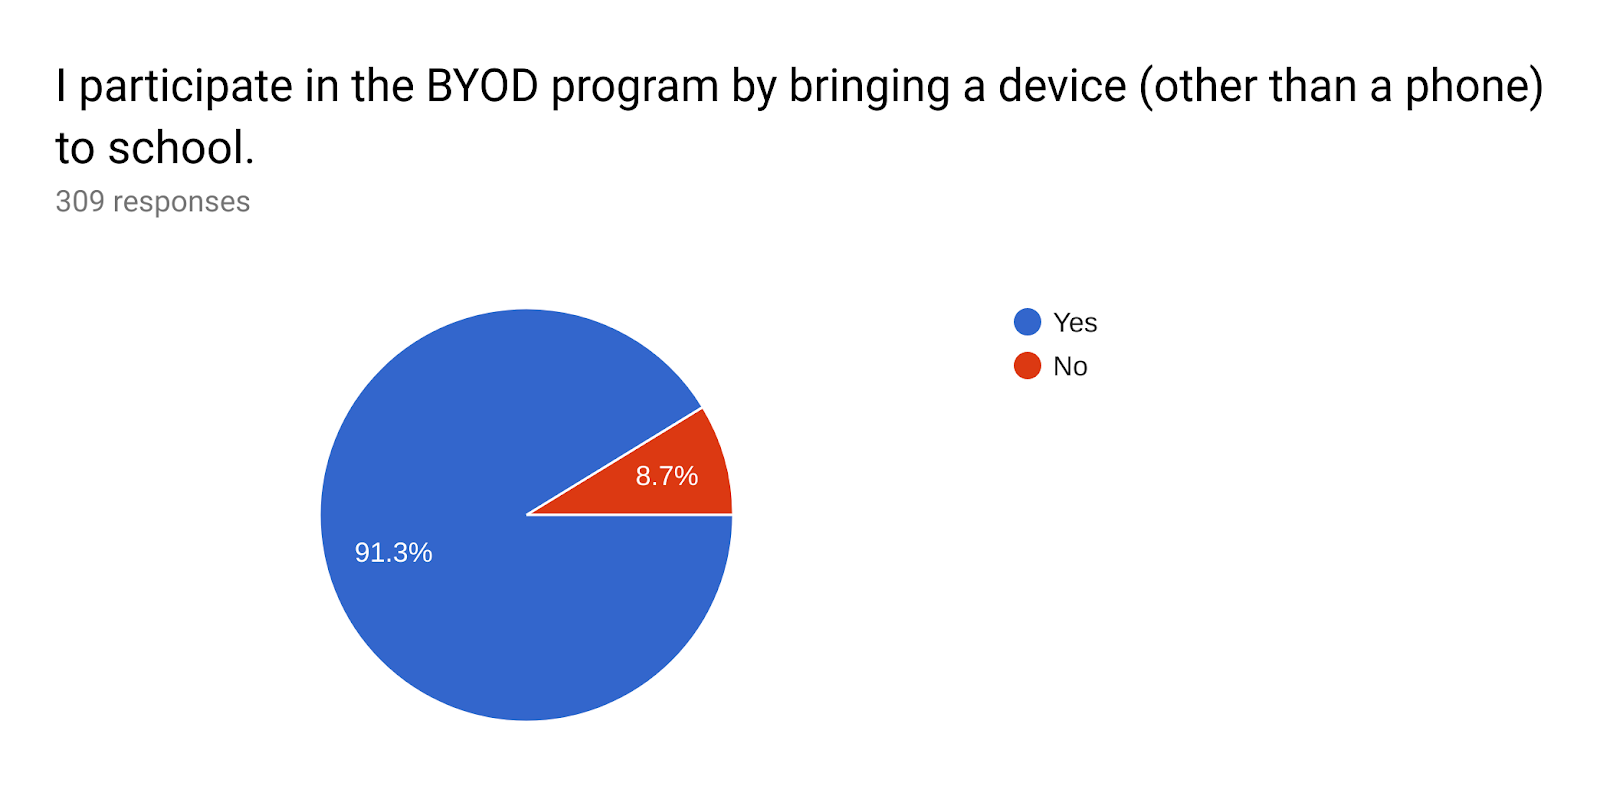 Forms response chart. Question title: I participate in the BYOD program by bringing a device (other than a phone) to school.. Number of responses: 309 responses.